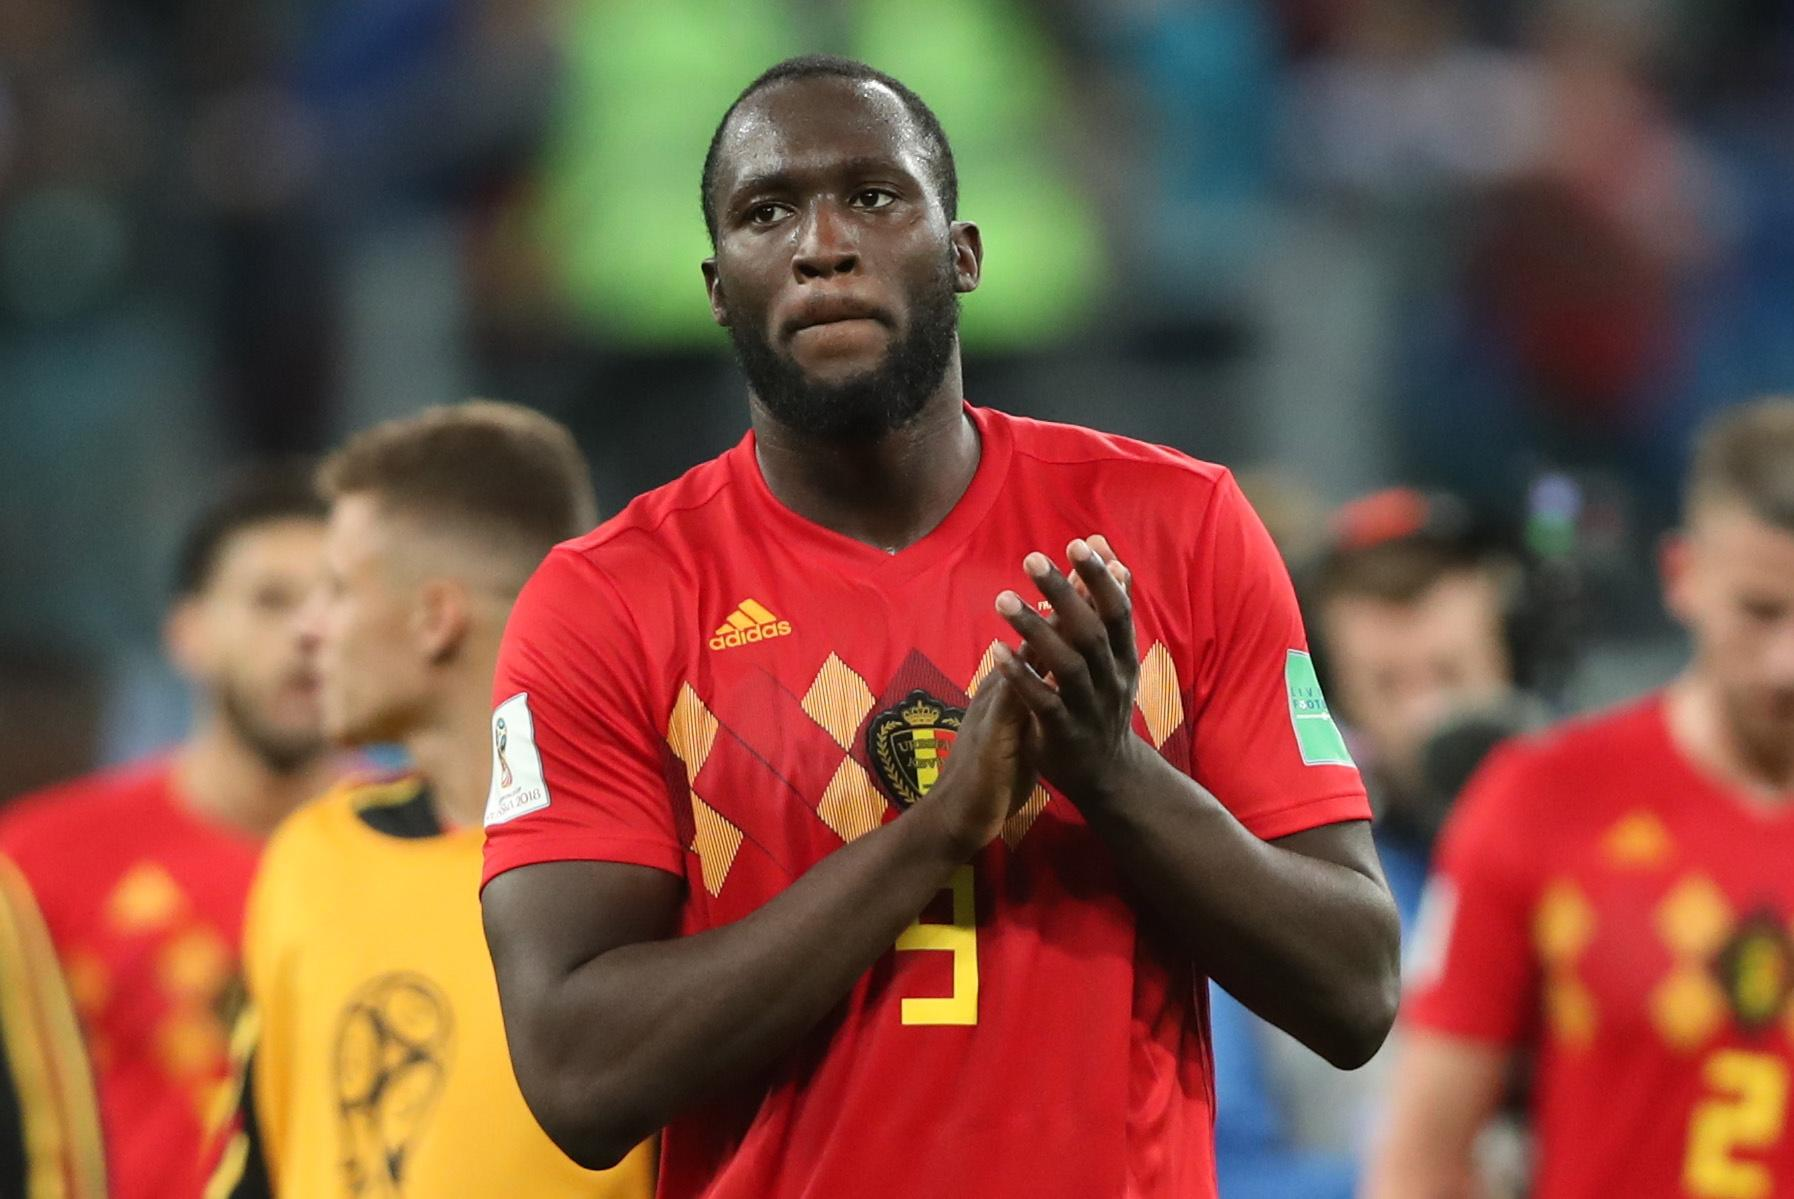 Romelu Lukaku set to start for Manchester United against Leicester tonight after returning to pre-season early following Jose Mourinho SOS